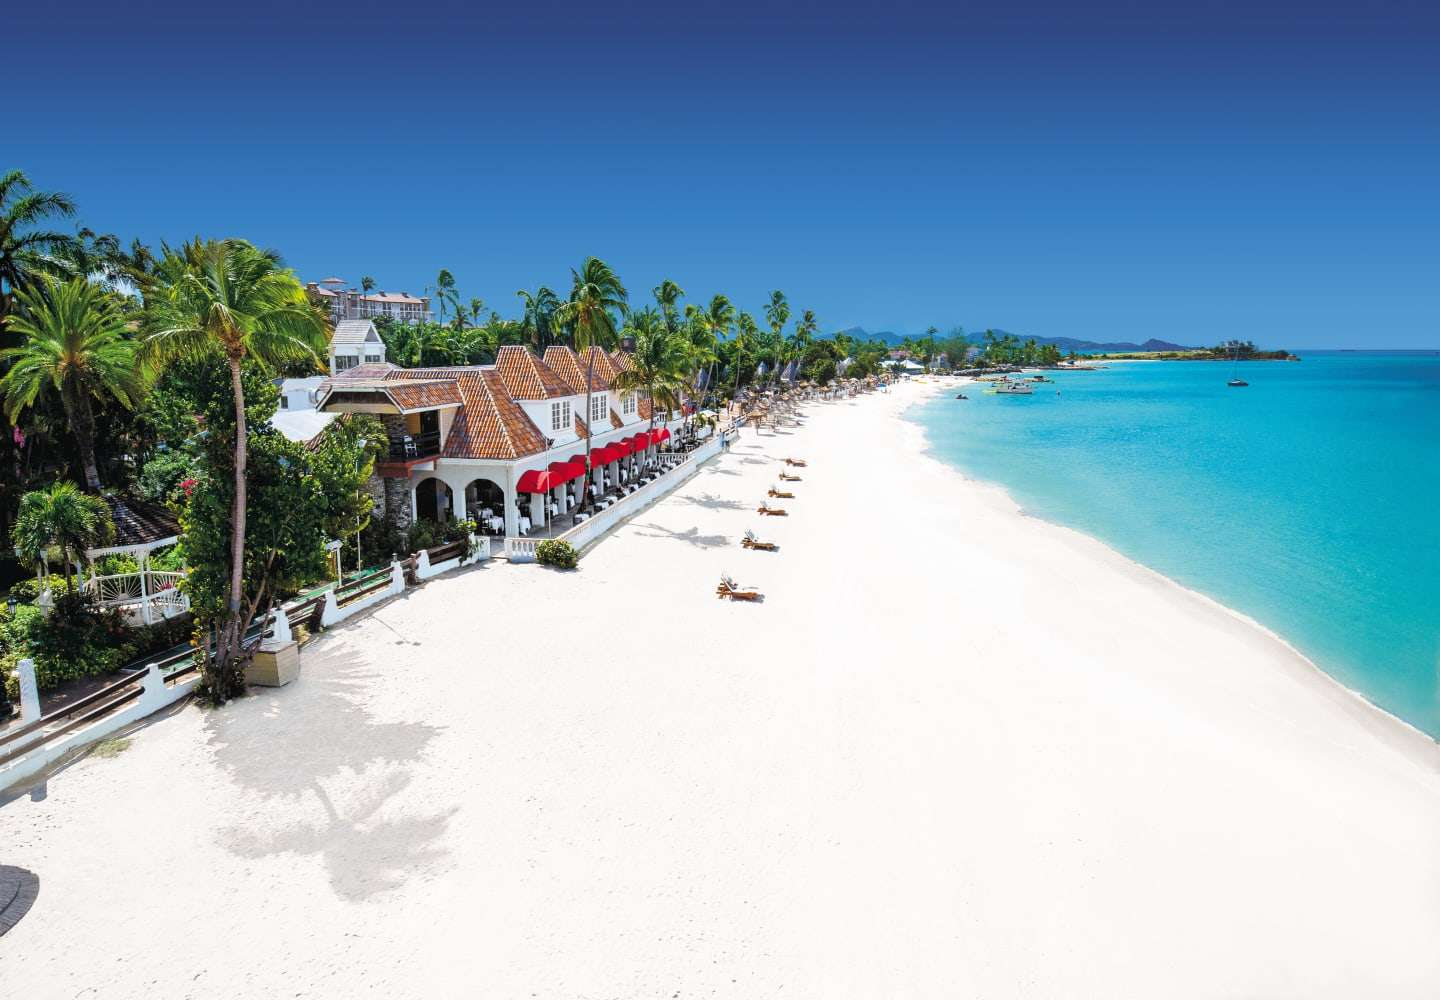 Sandals Grande Antigua Resort & Spa, Saint John's